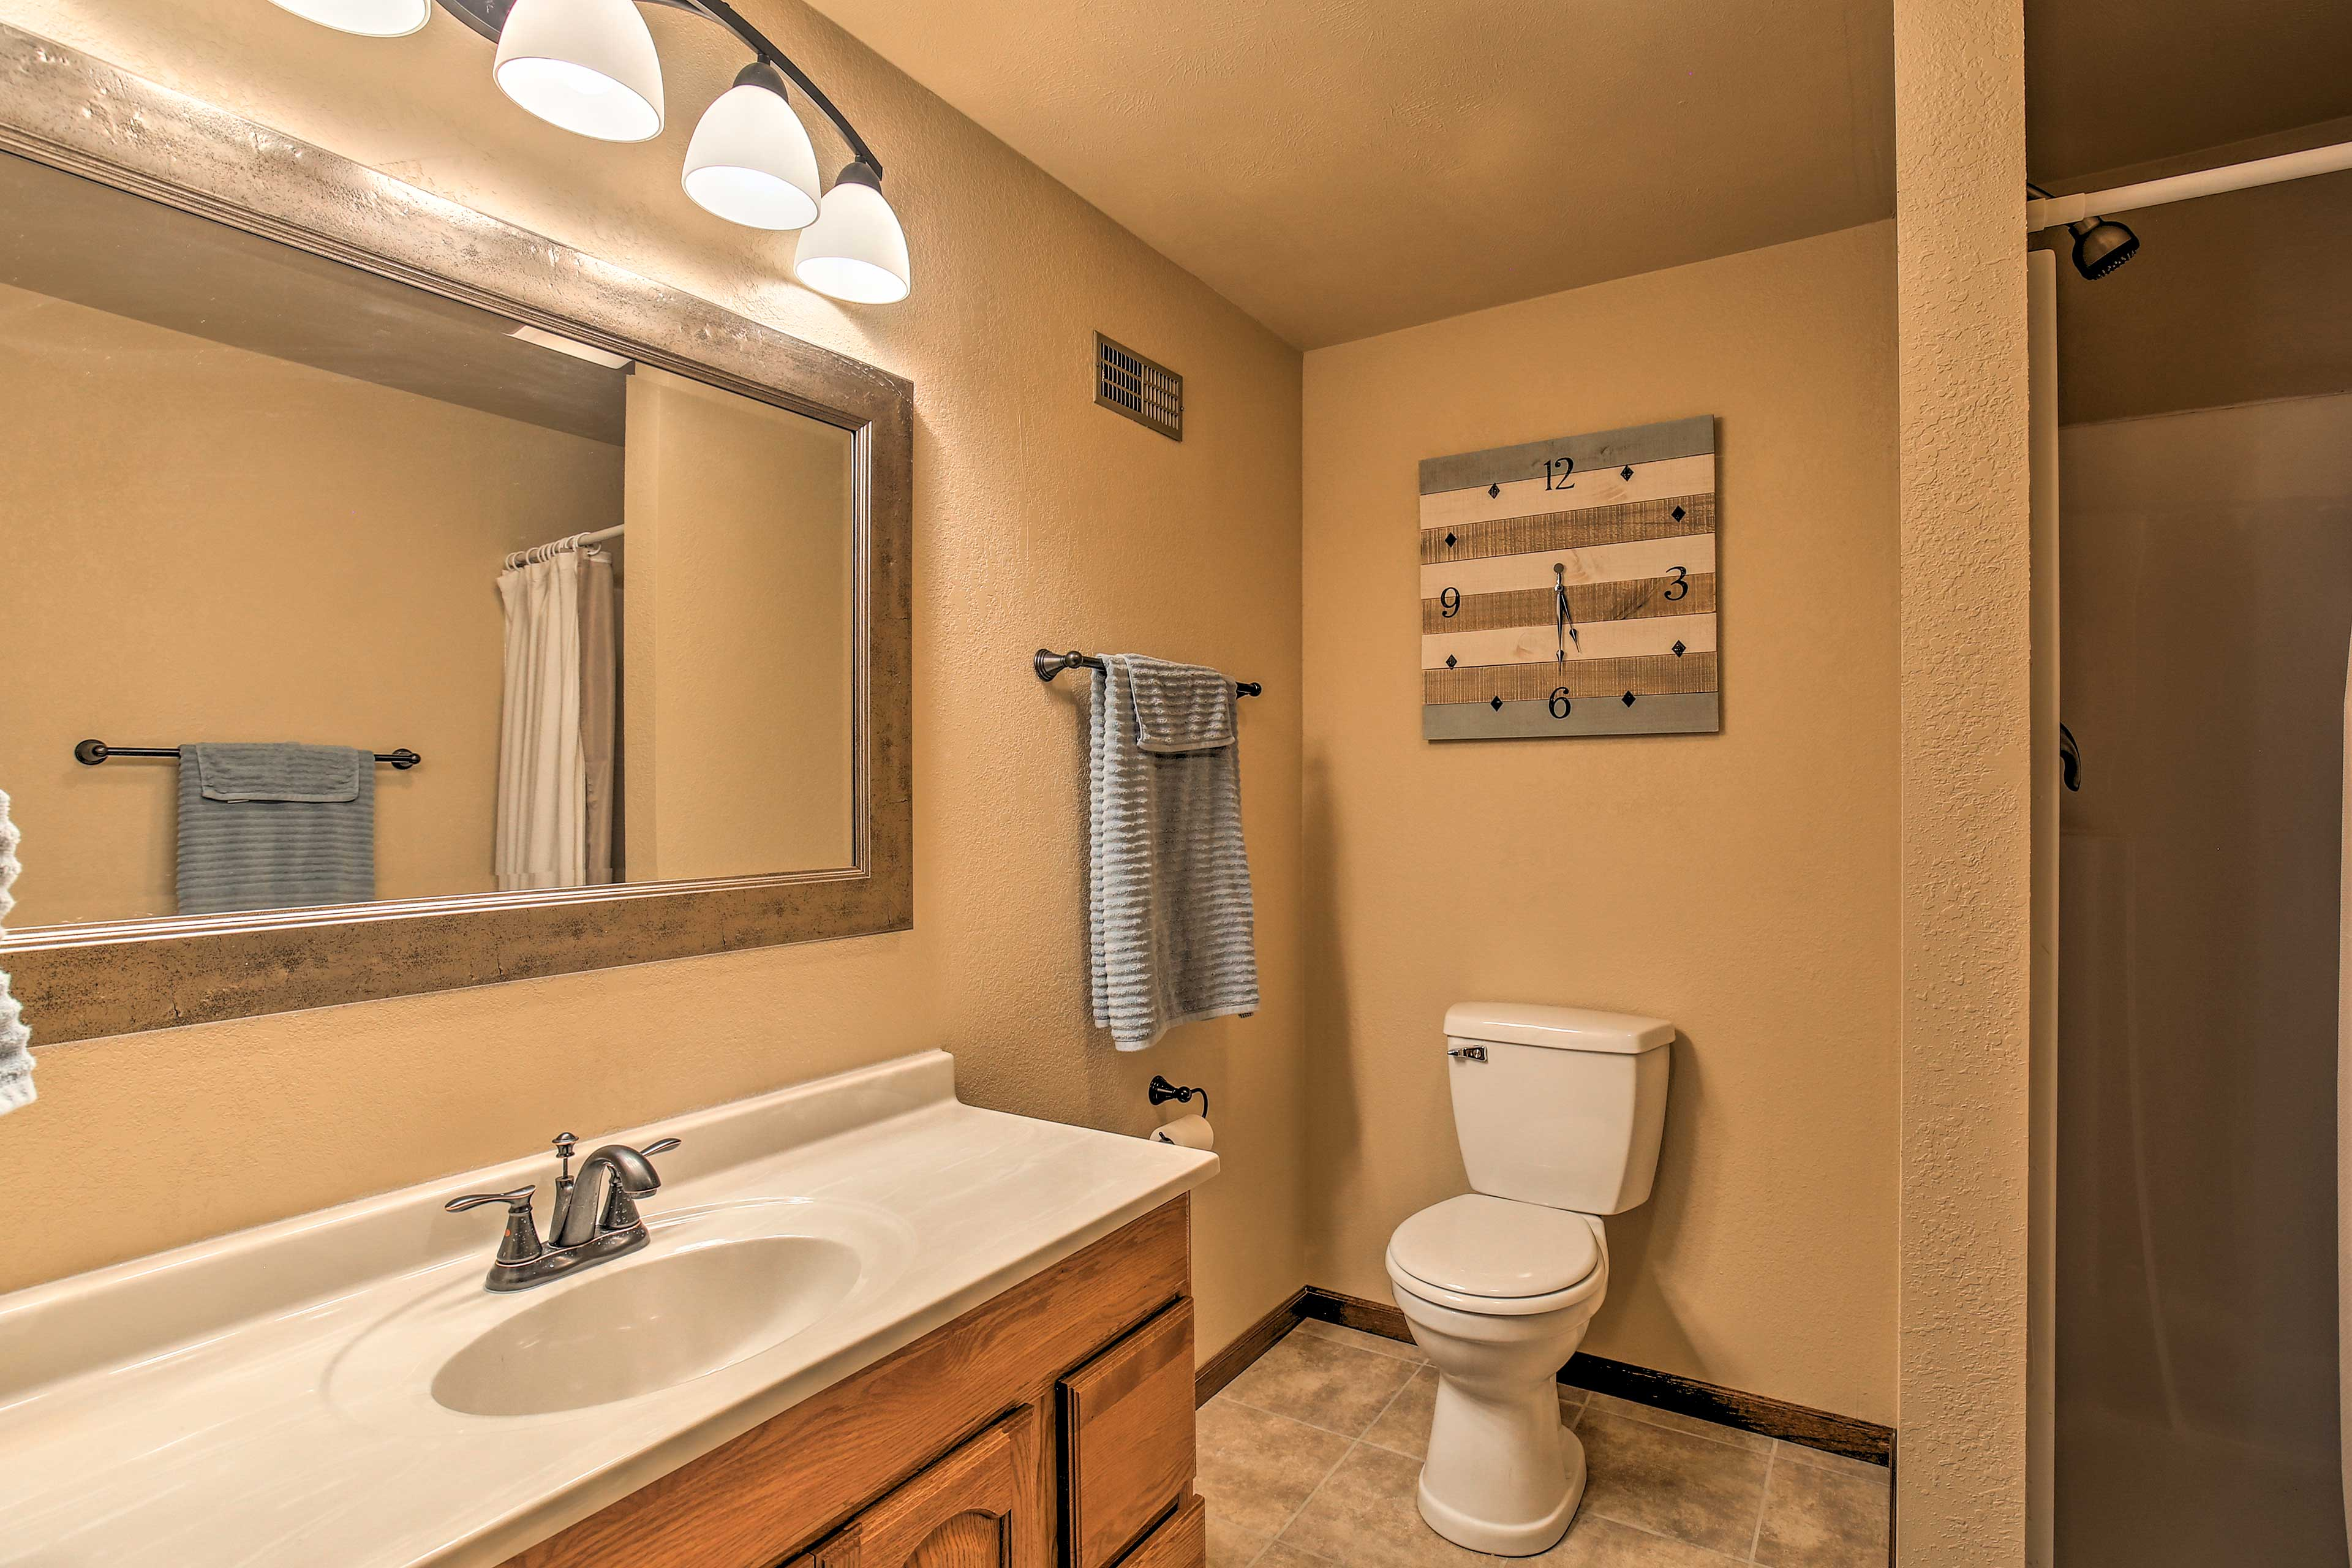 The lower level also has a full bathroom with a walk-in shower.